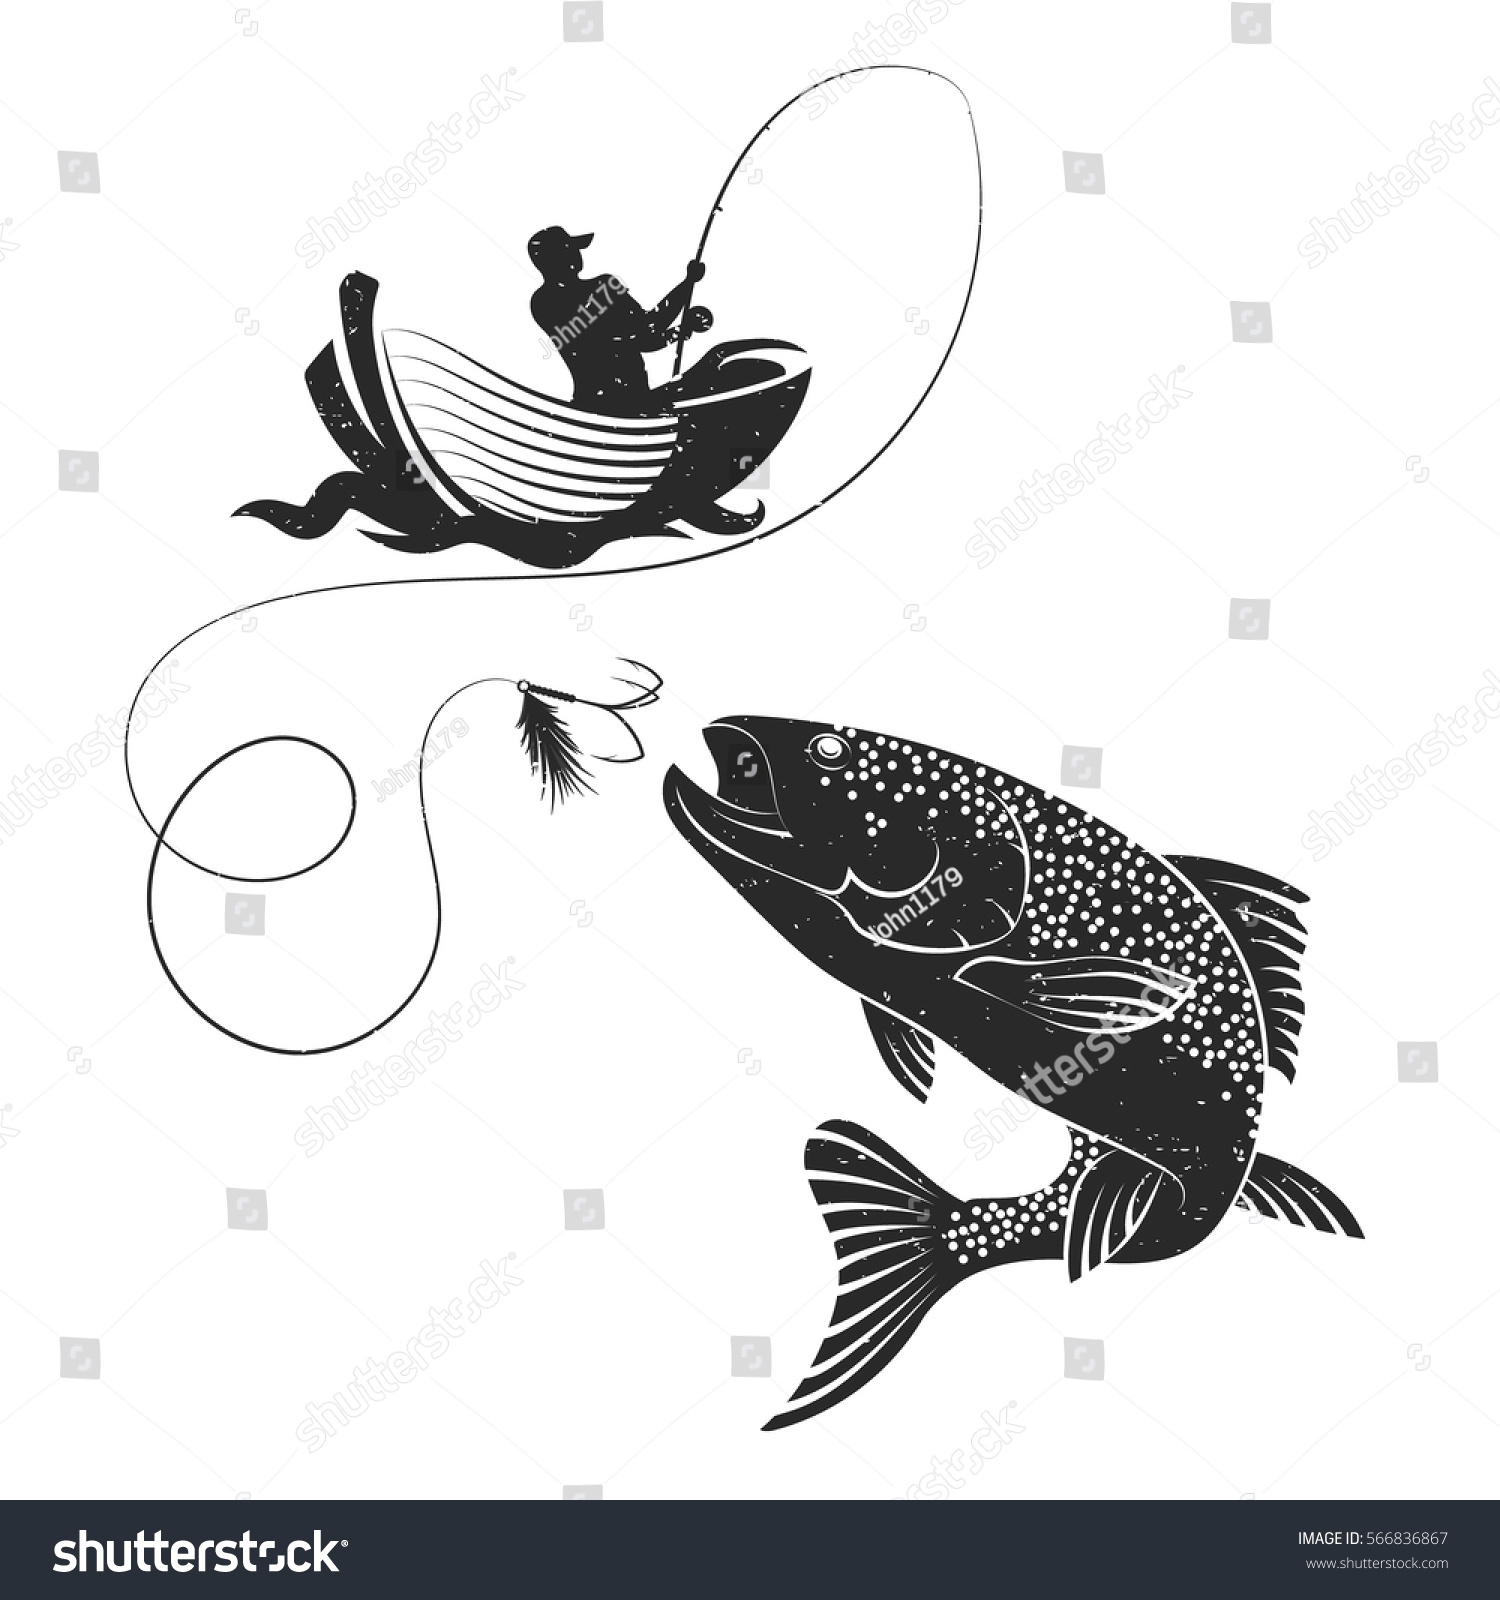 Fisherman Catches Salmon On Boat Silhouette Stock Vector Royalty Free 566836867